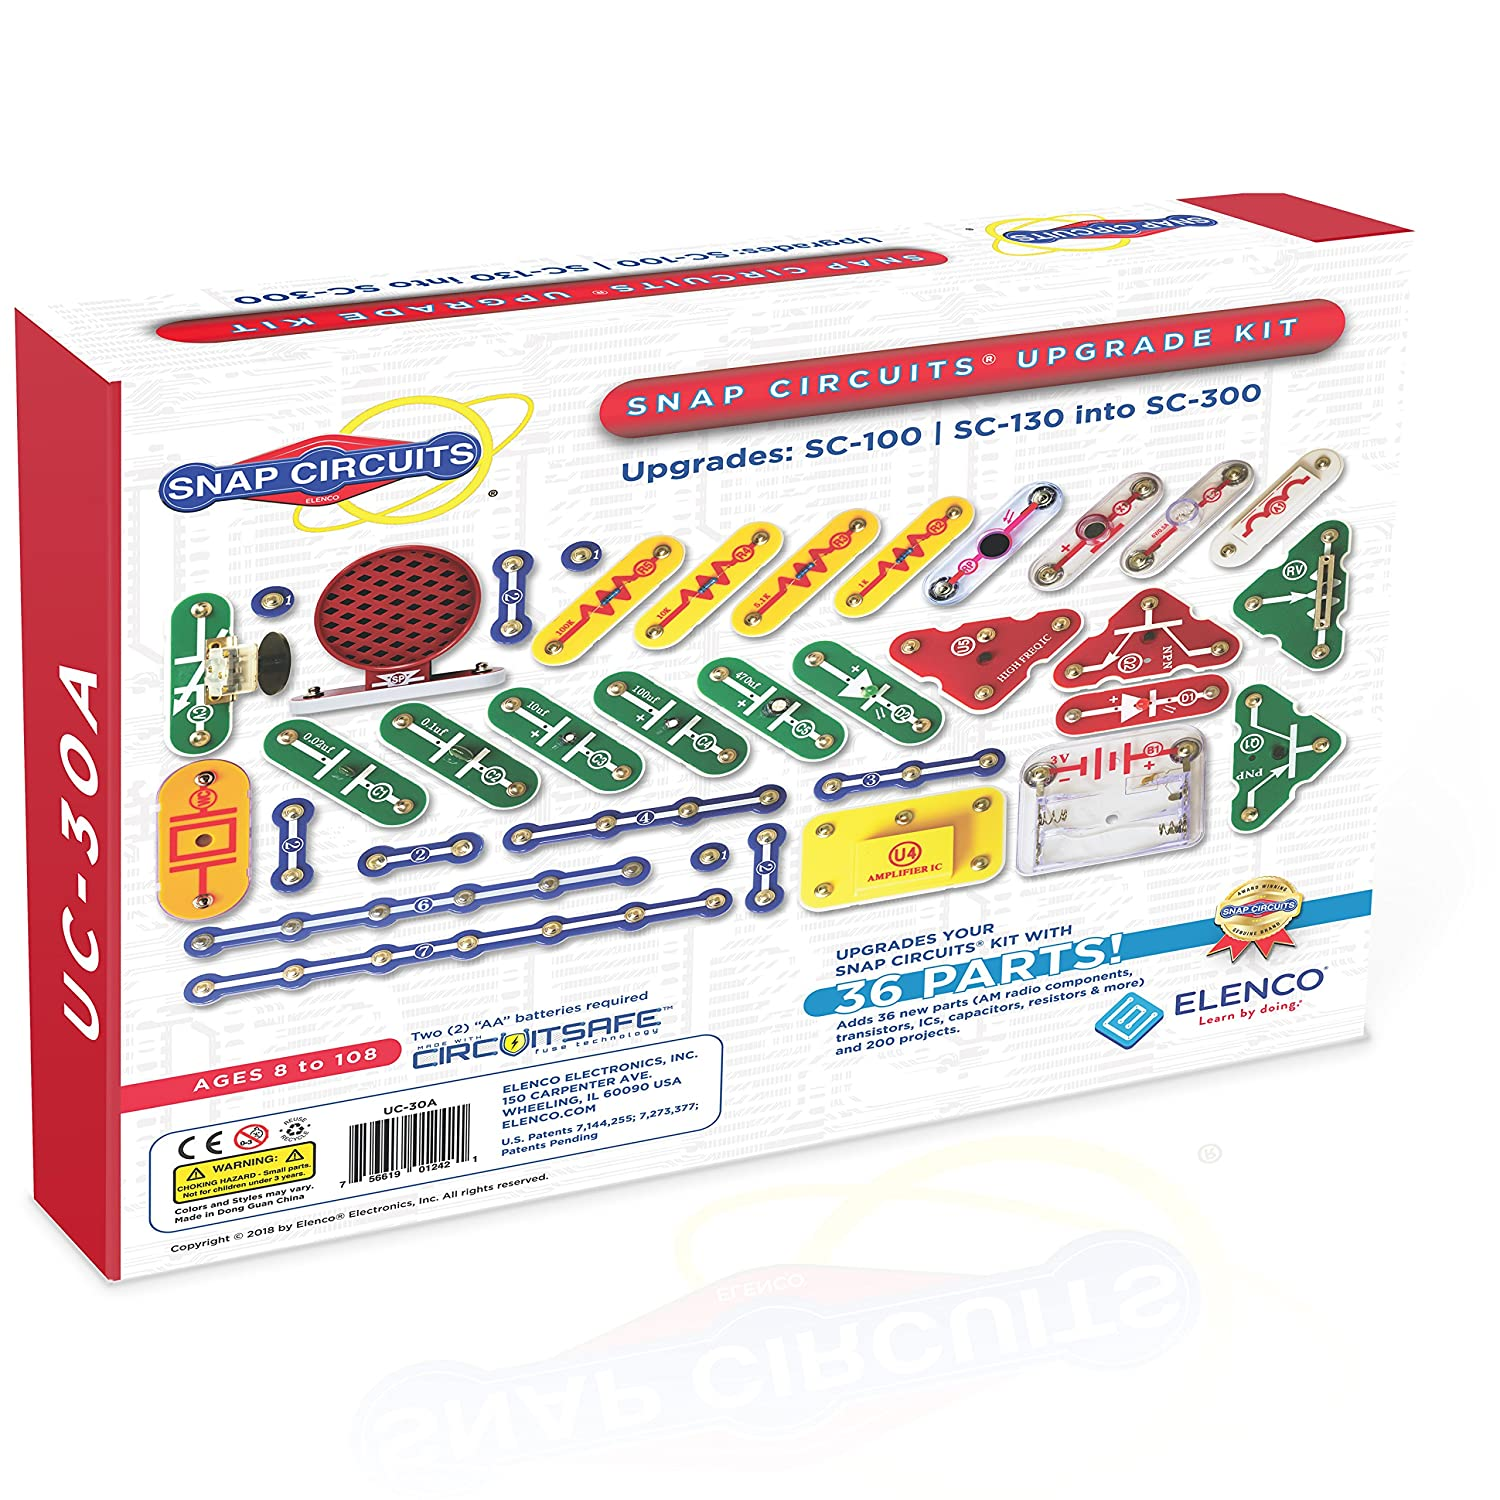 Elenco Scl 175 Snap Circuits Light Kids Learn Electronic Projects Jr Select Sc 130 To 300 Upgrade Kit Toys Games